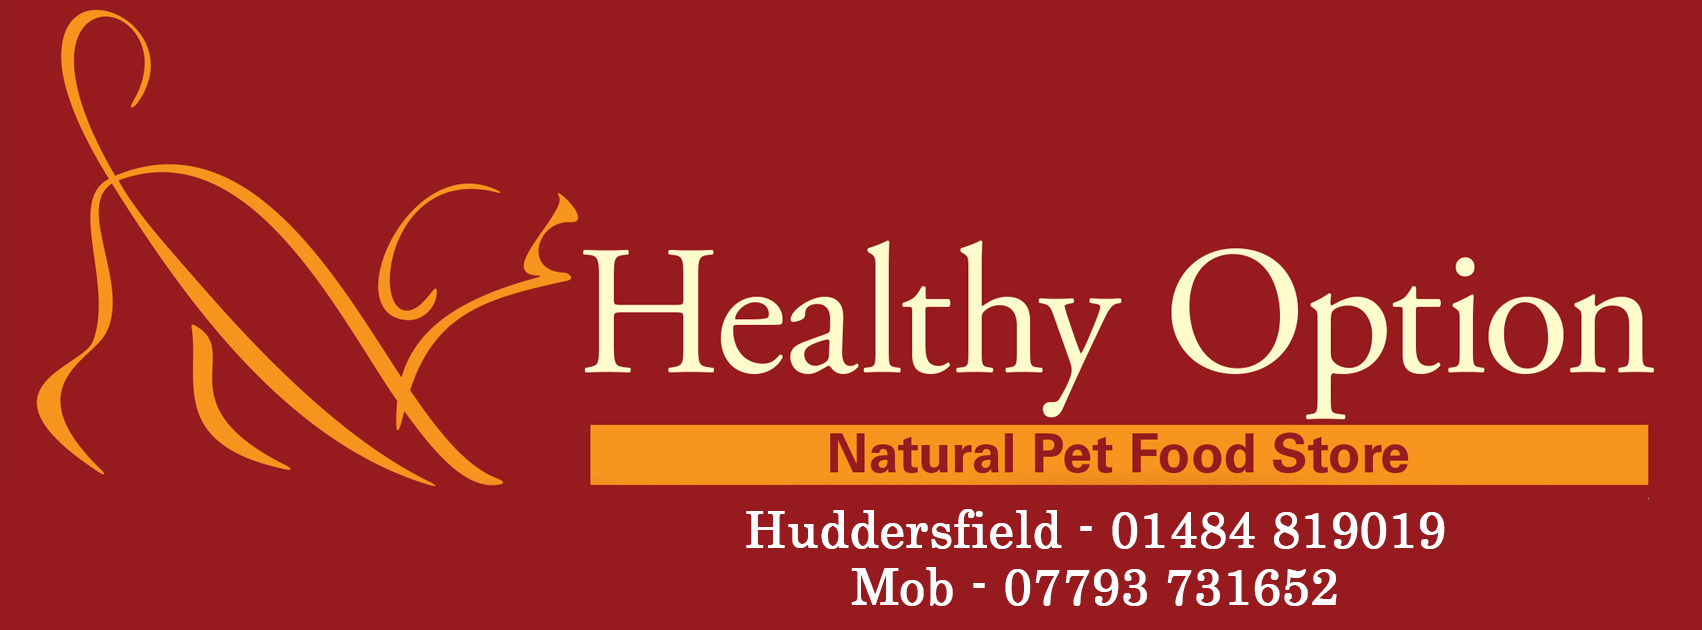 Healthy Option Pet Food Huddersfield